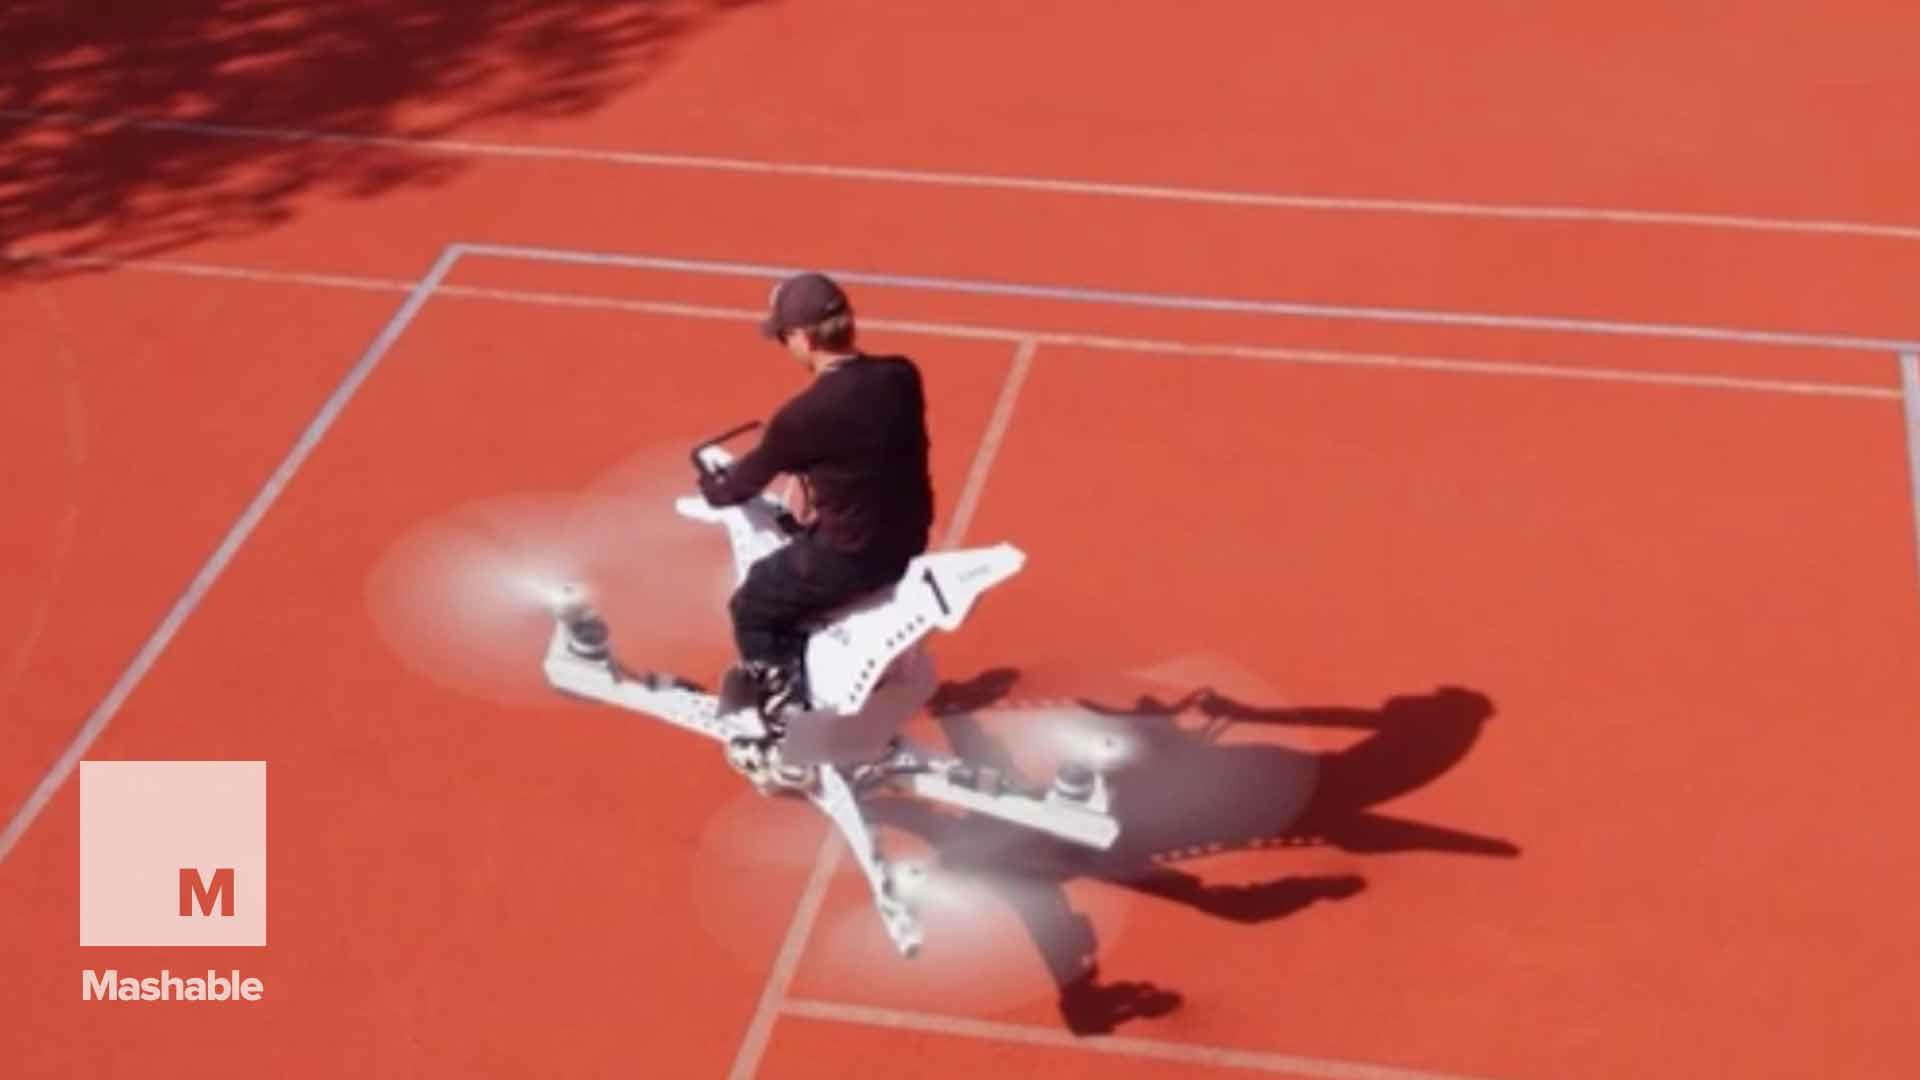 This flying motorcycle is straight out of Star Wars